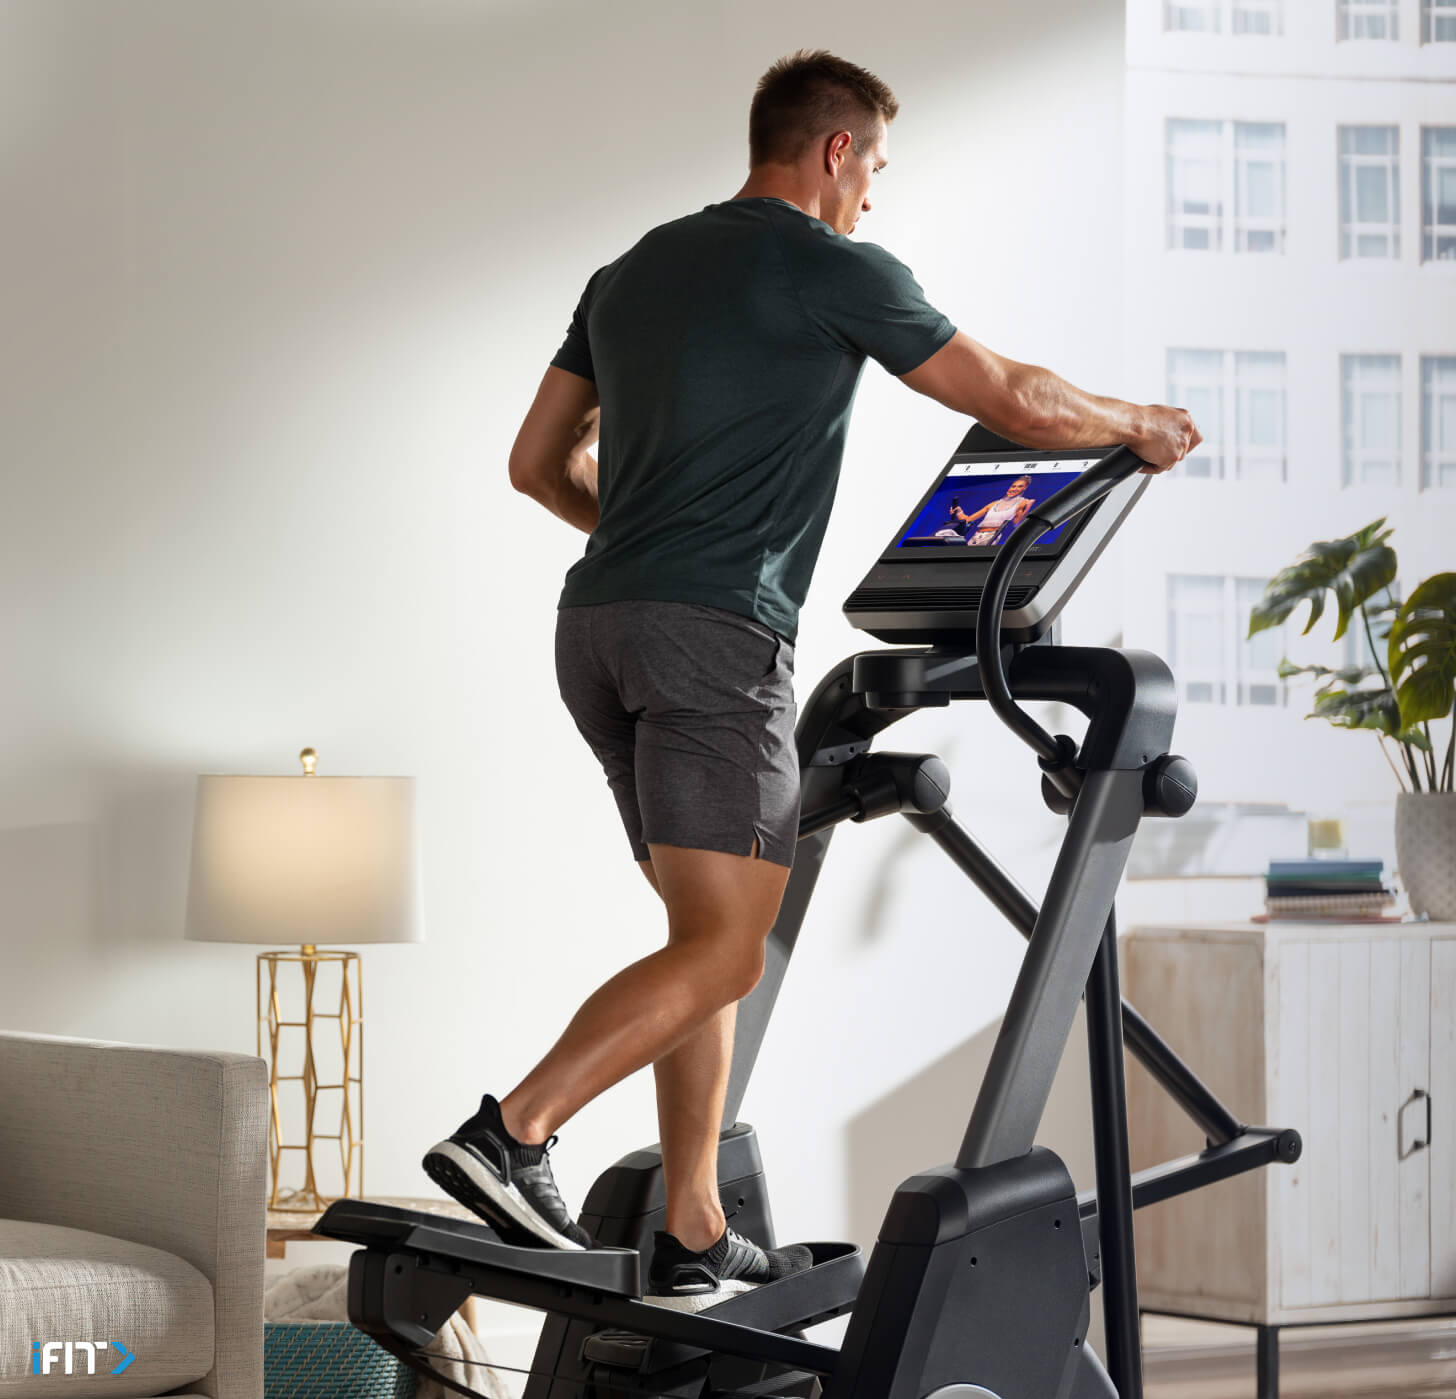 Man works out with an iFIT elliptical class